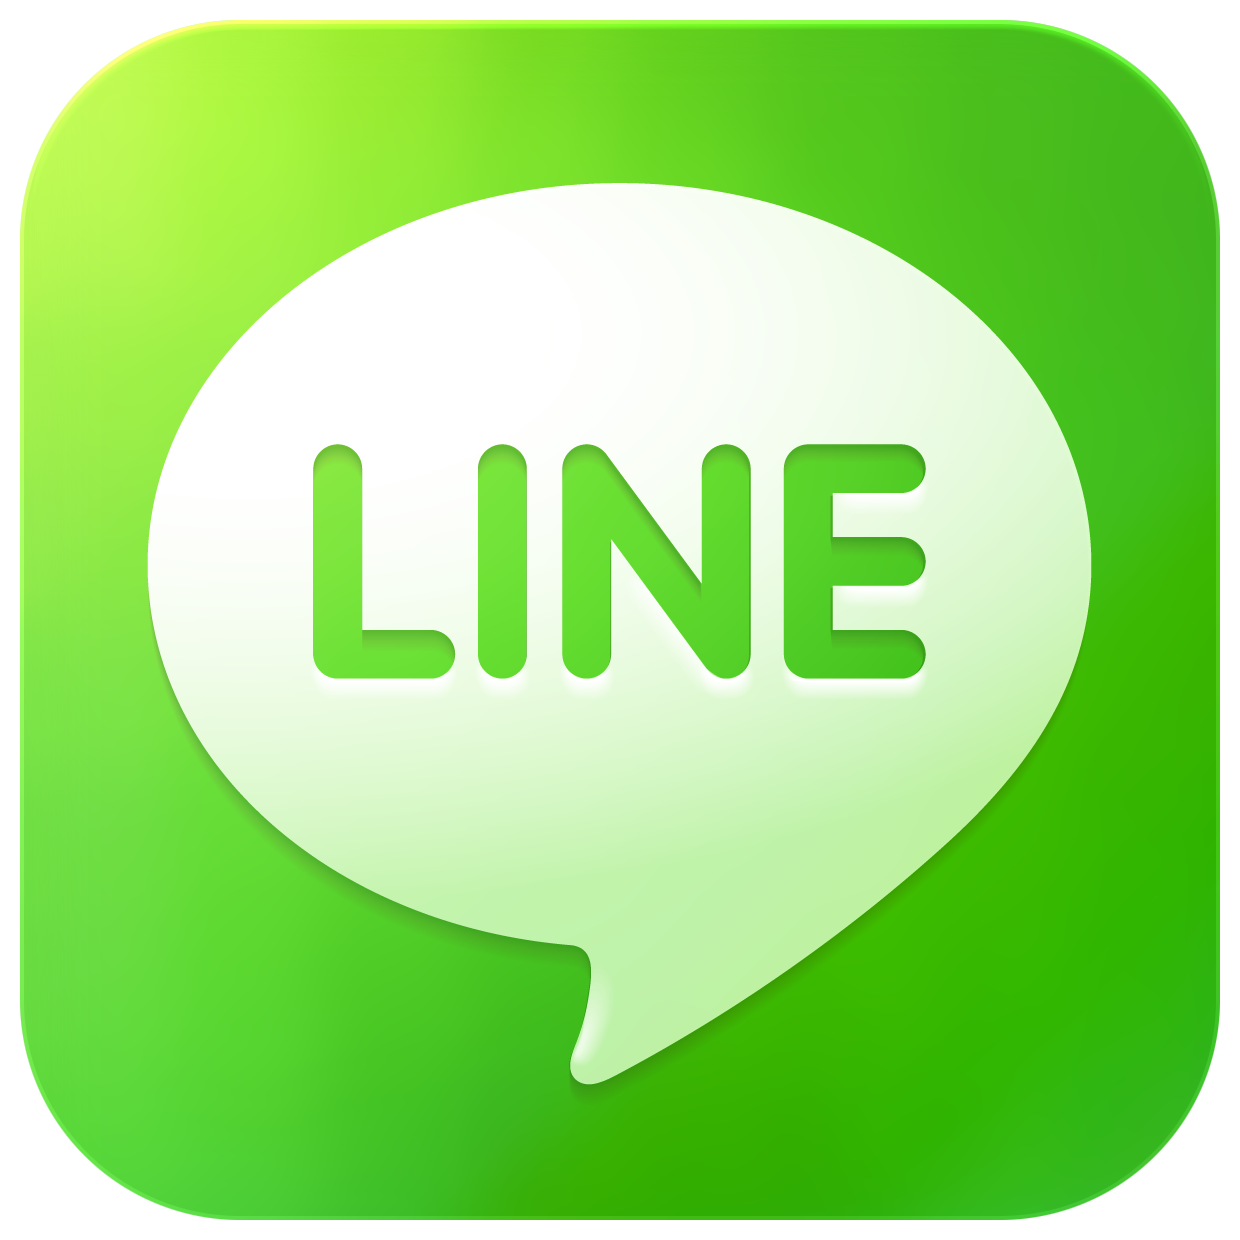 AMB: WhatsApp, WeChat, and Line : The pros and cons